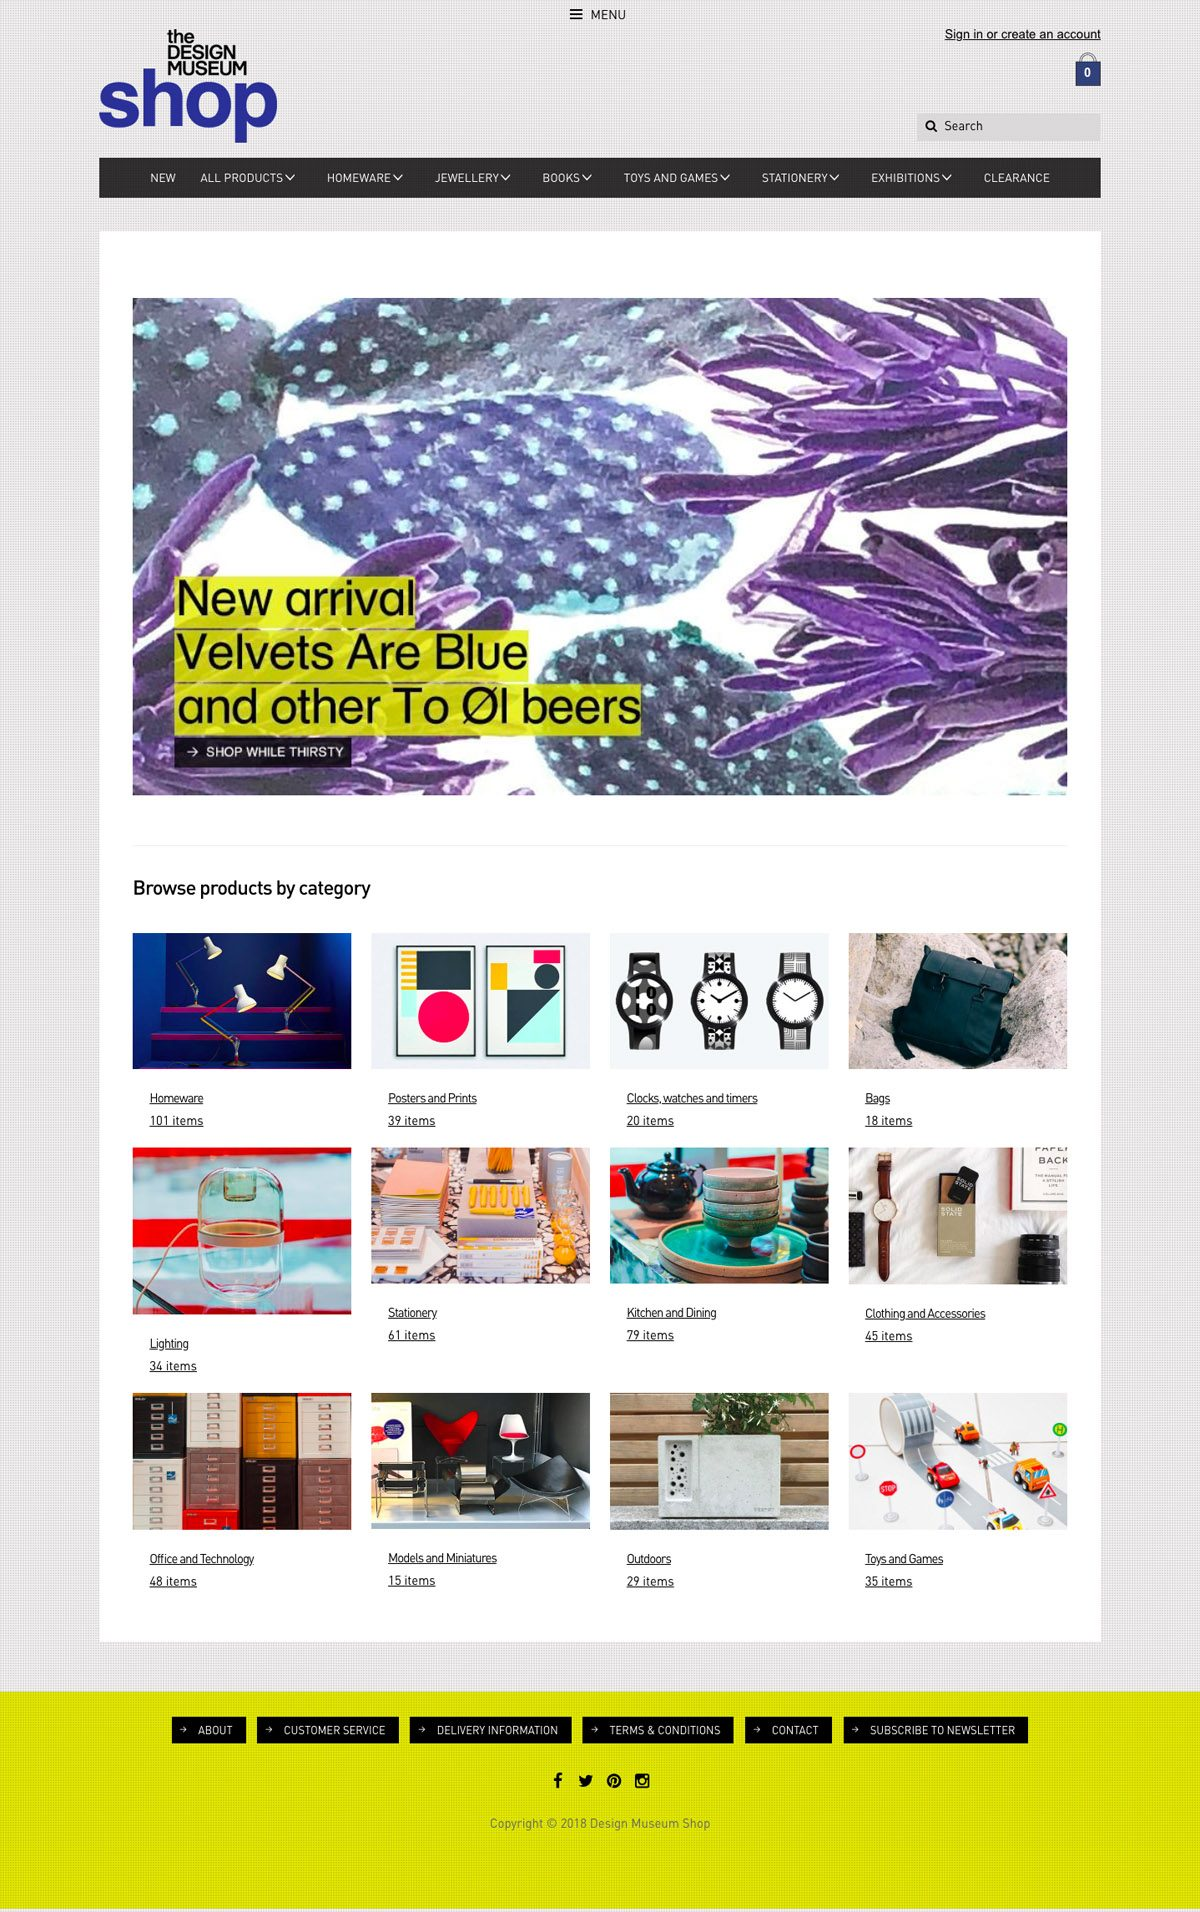 eCommerce website: Design Museum Shop